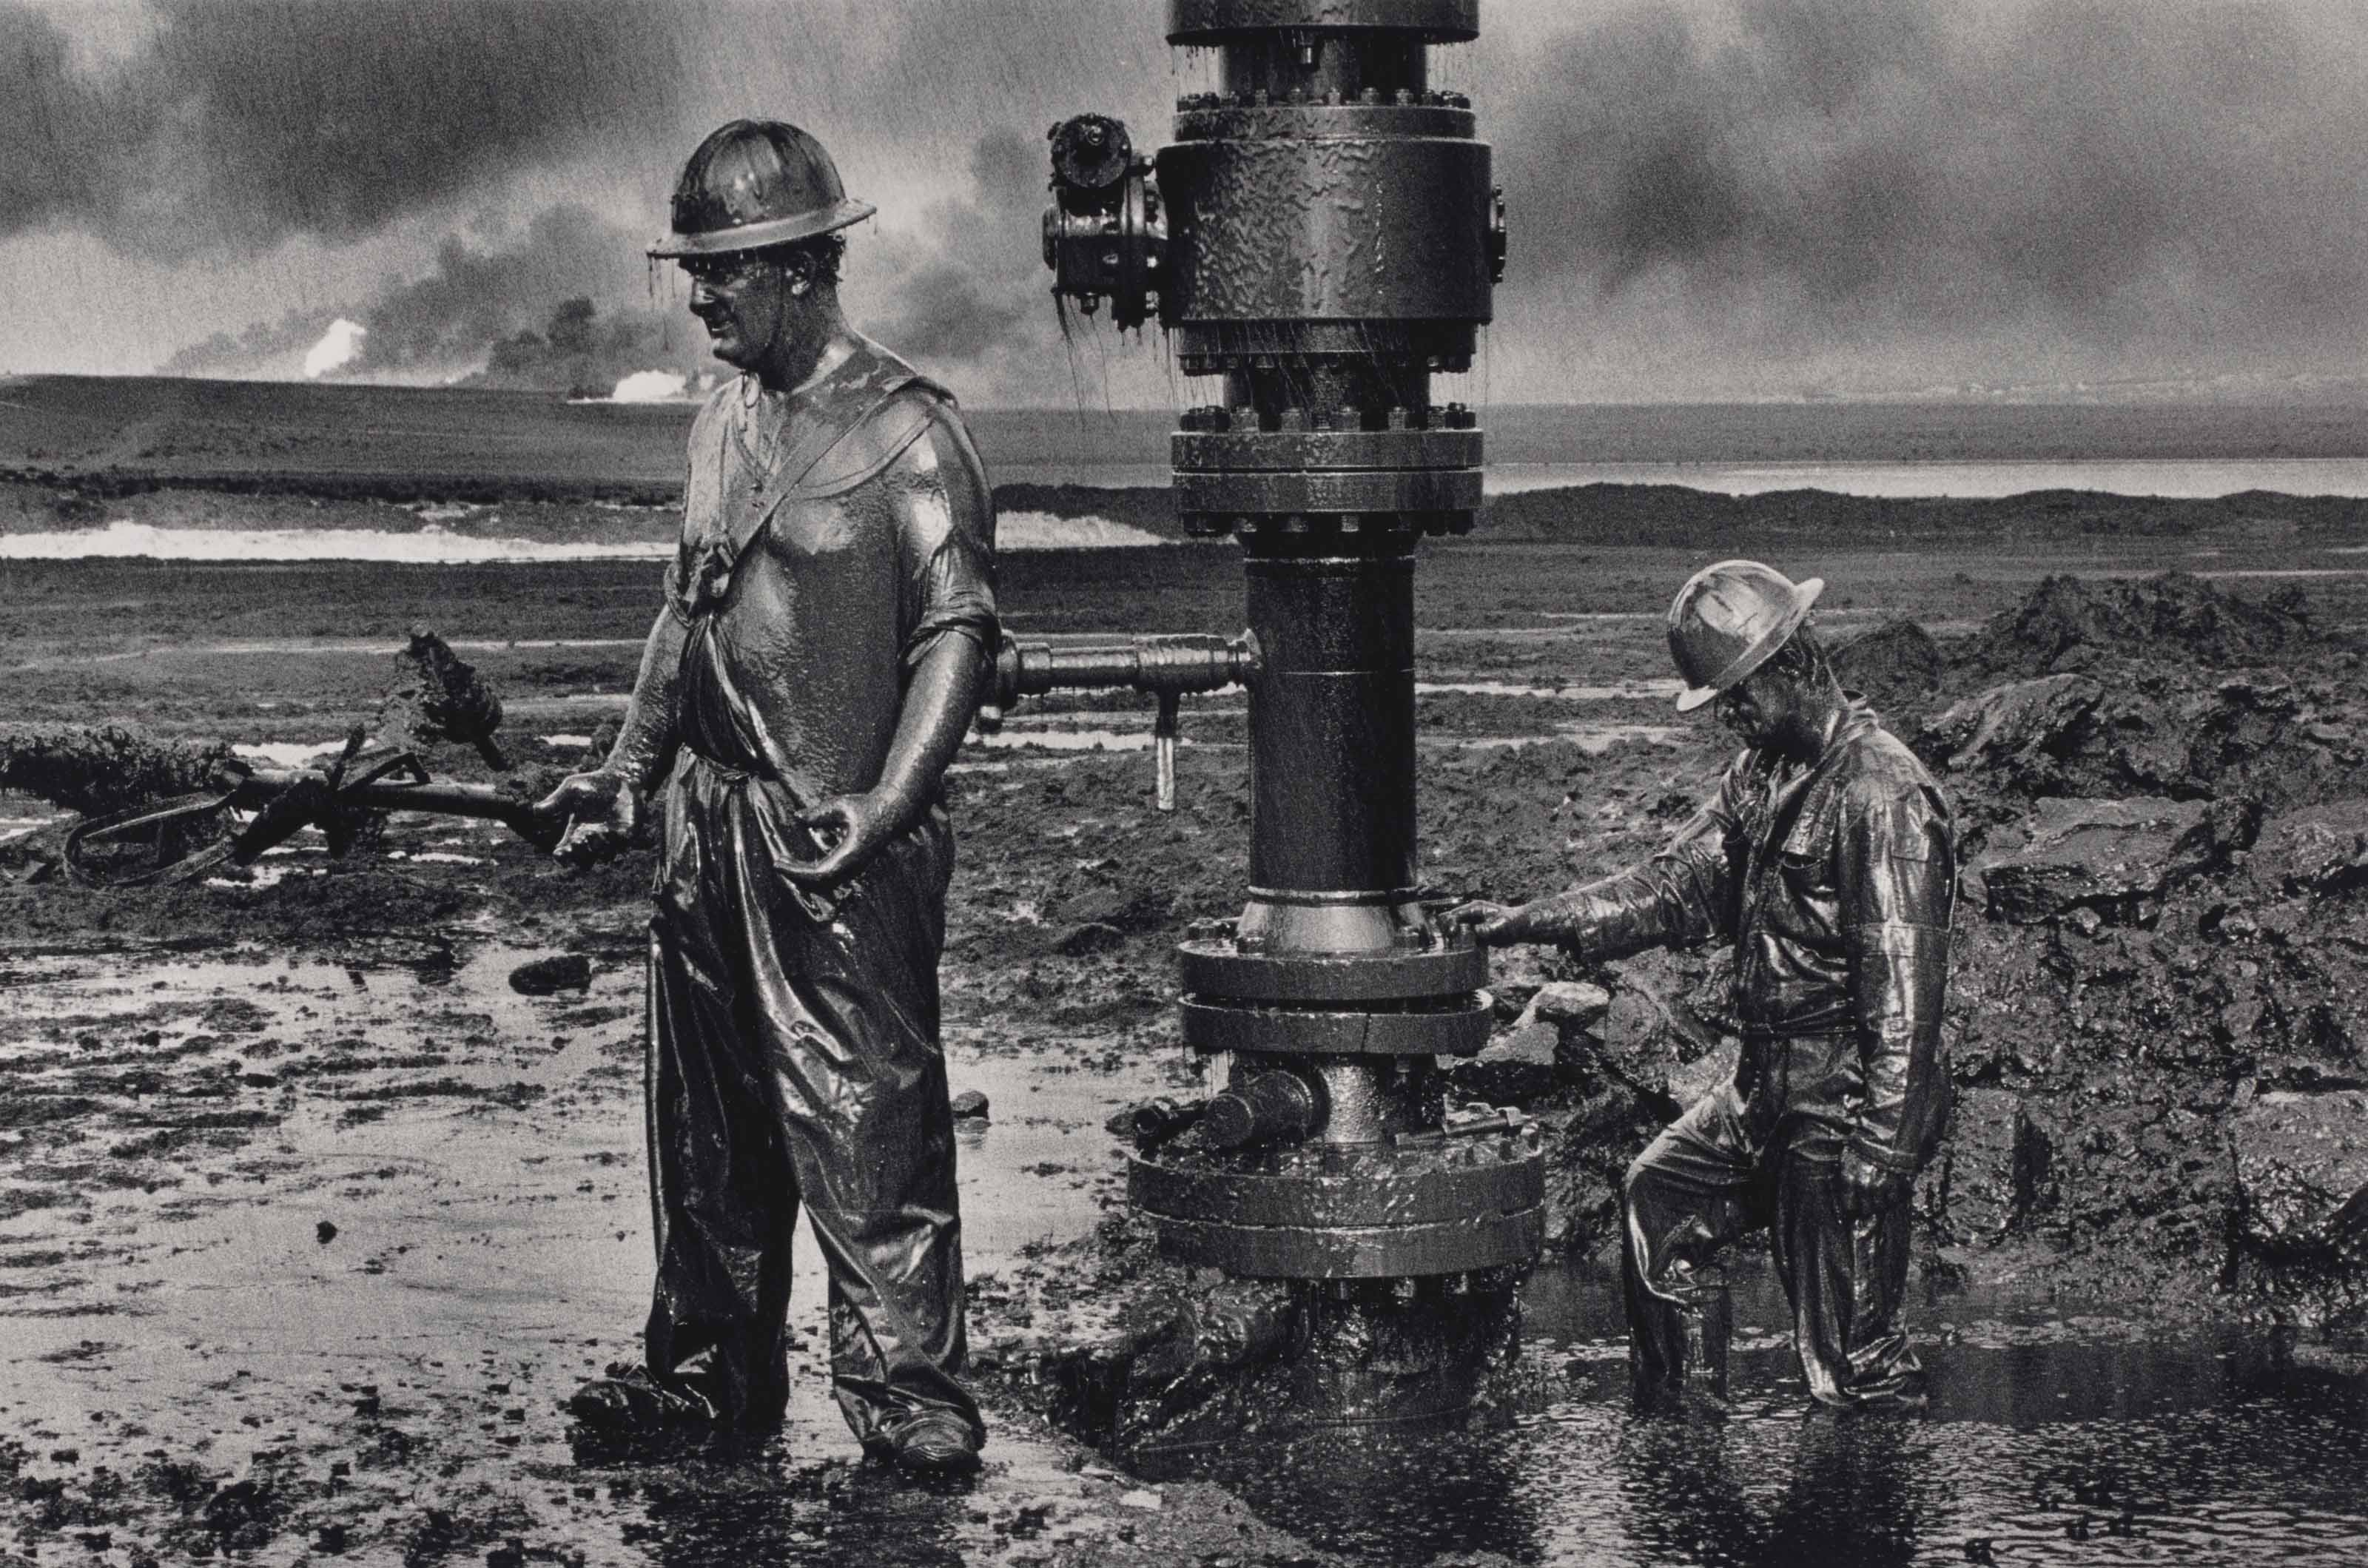 Greater Buhrman Oil Field, Kuwait, 1991